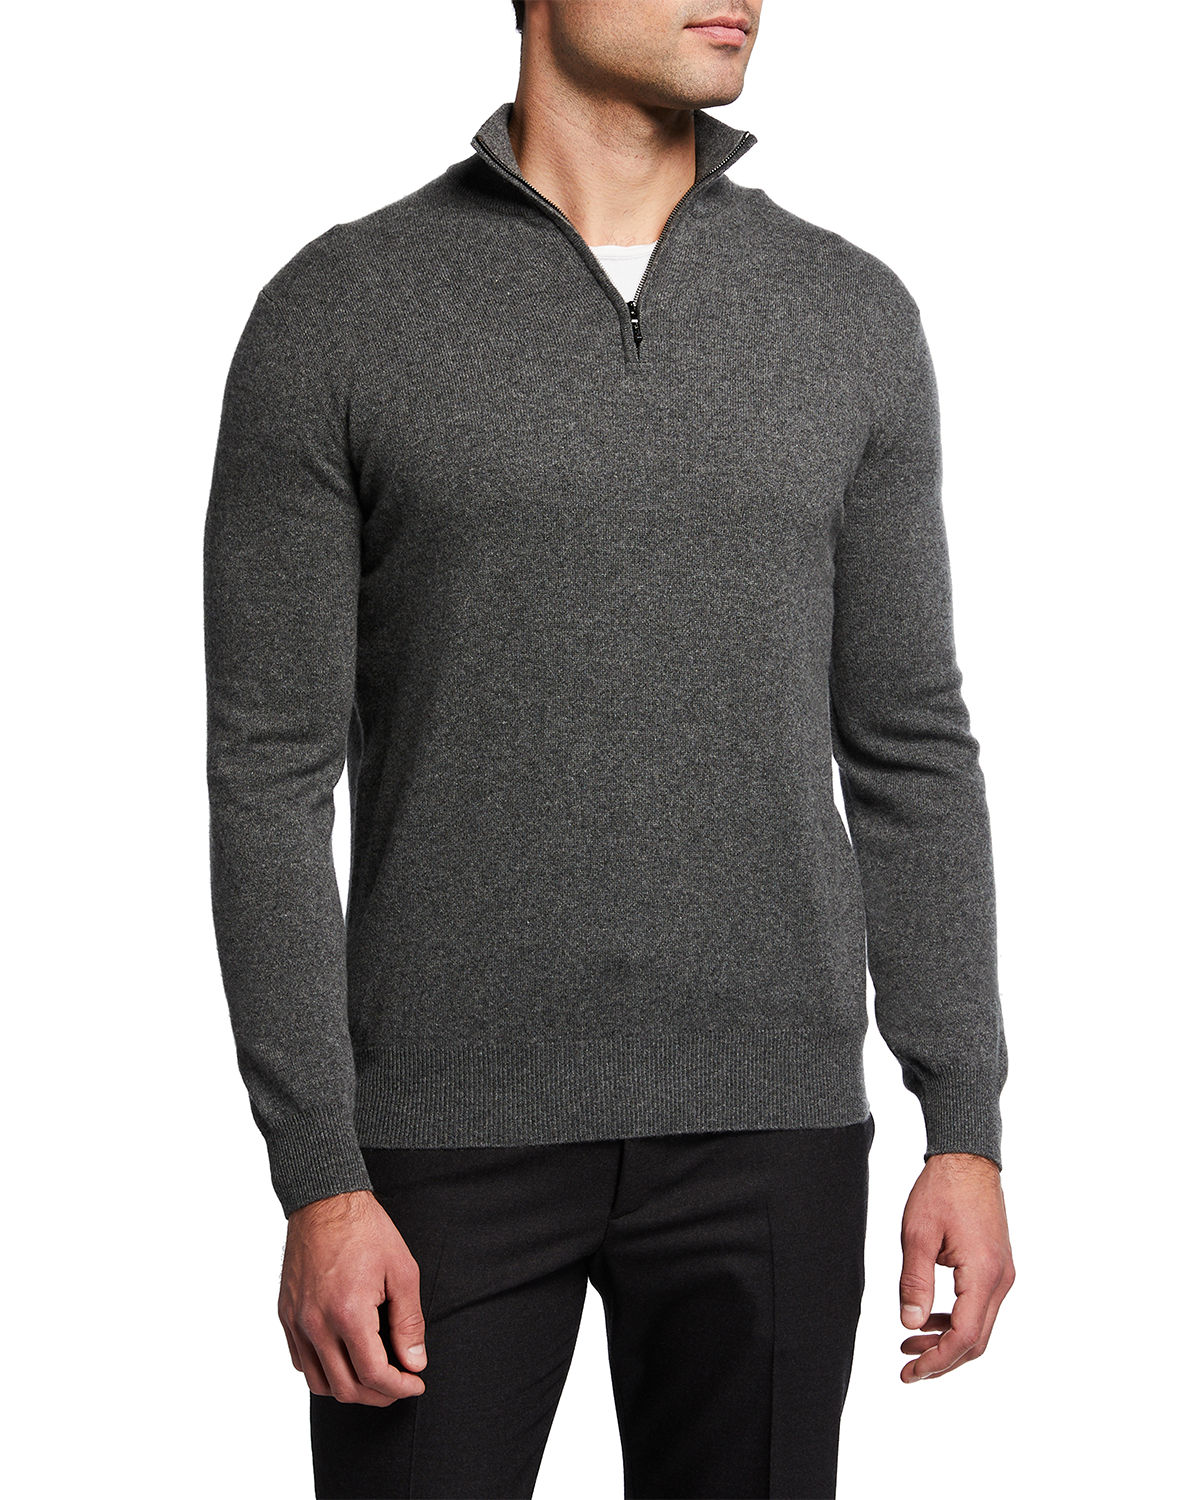 Loro Piana MEN'S CLASSIC BABY CASHMERE MEZZOCOLLO SWEATER